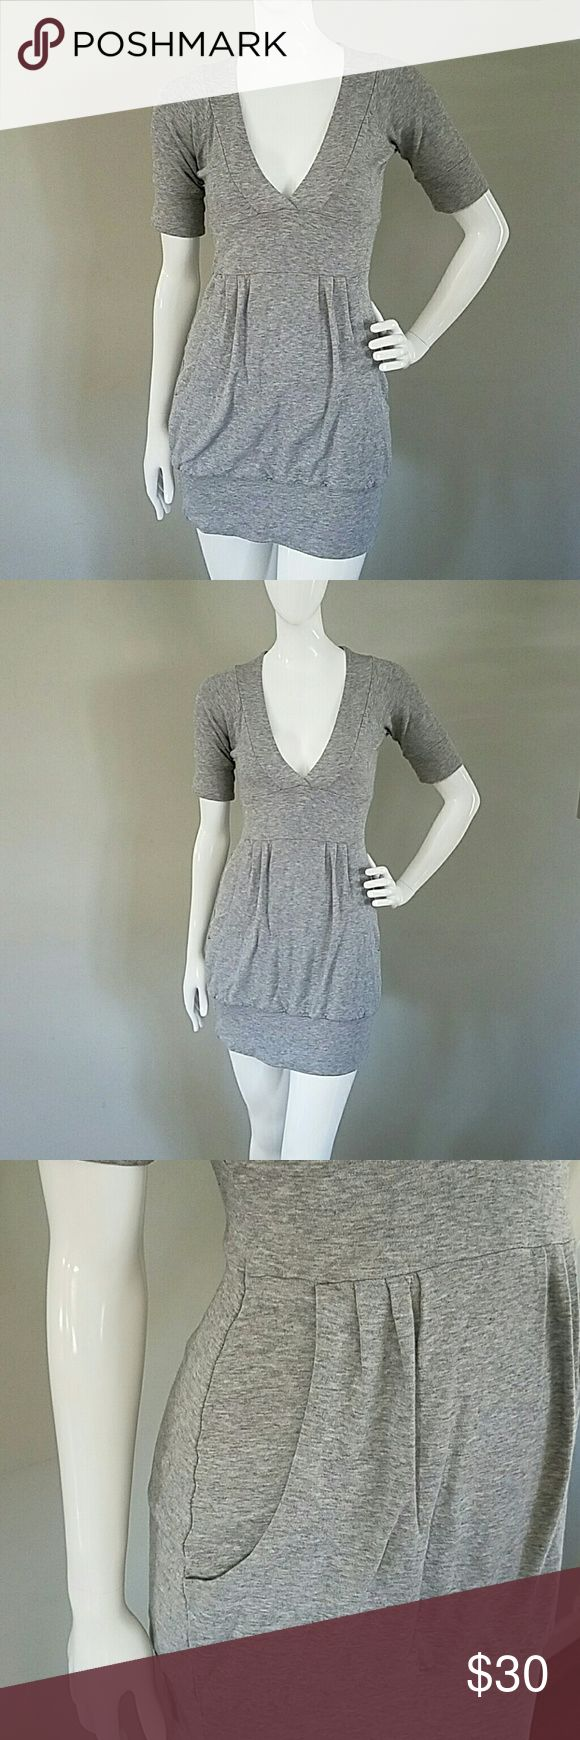 Sweater dress Grey short sleeve sweater dress with pockets!! Can be worn as dress or with leggings Armani Exchange Dresses Mini